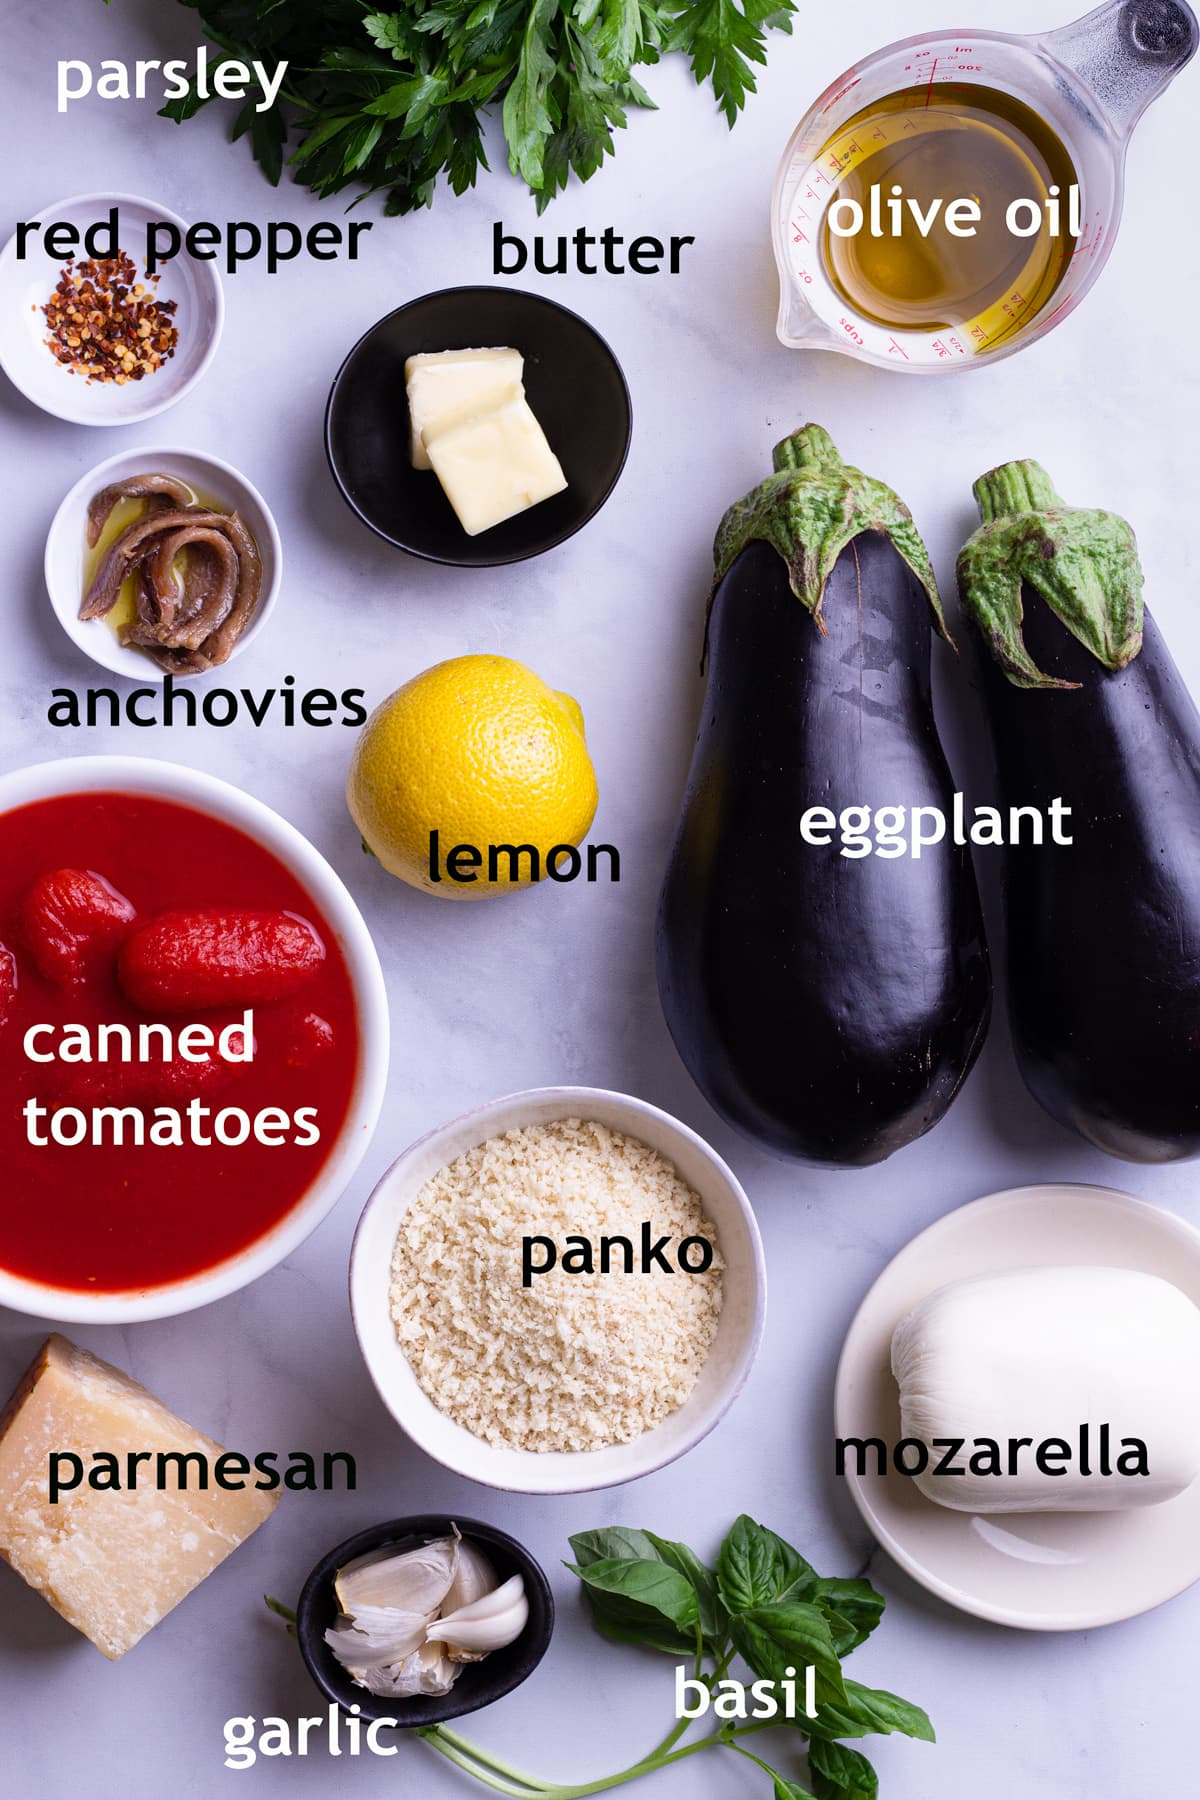 Overhead view of ingredients including eggplant, olive oil, canned tomatoes, mozarella, parmesan, panko breadcrumbs and garlic.